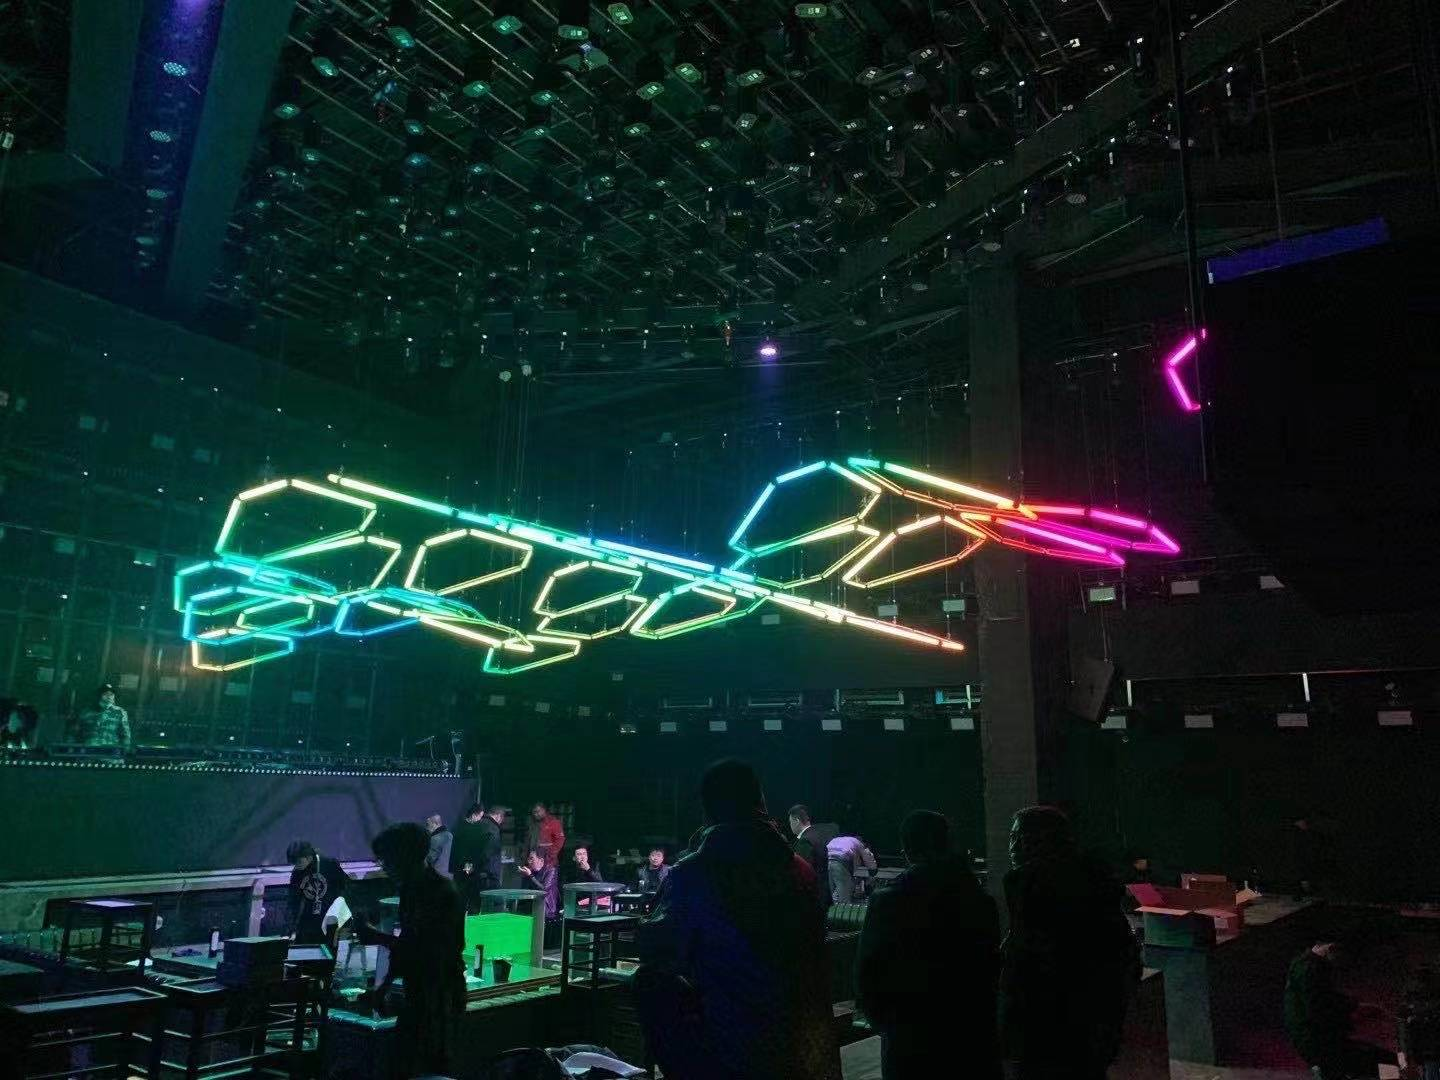 SUPER HOUSE CLUB WITH Club lights solution